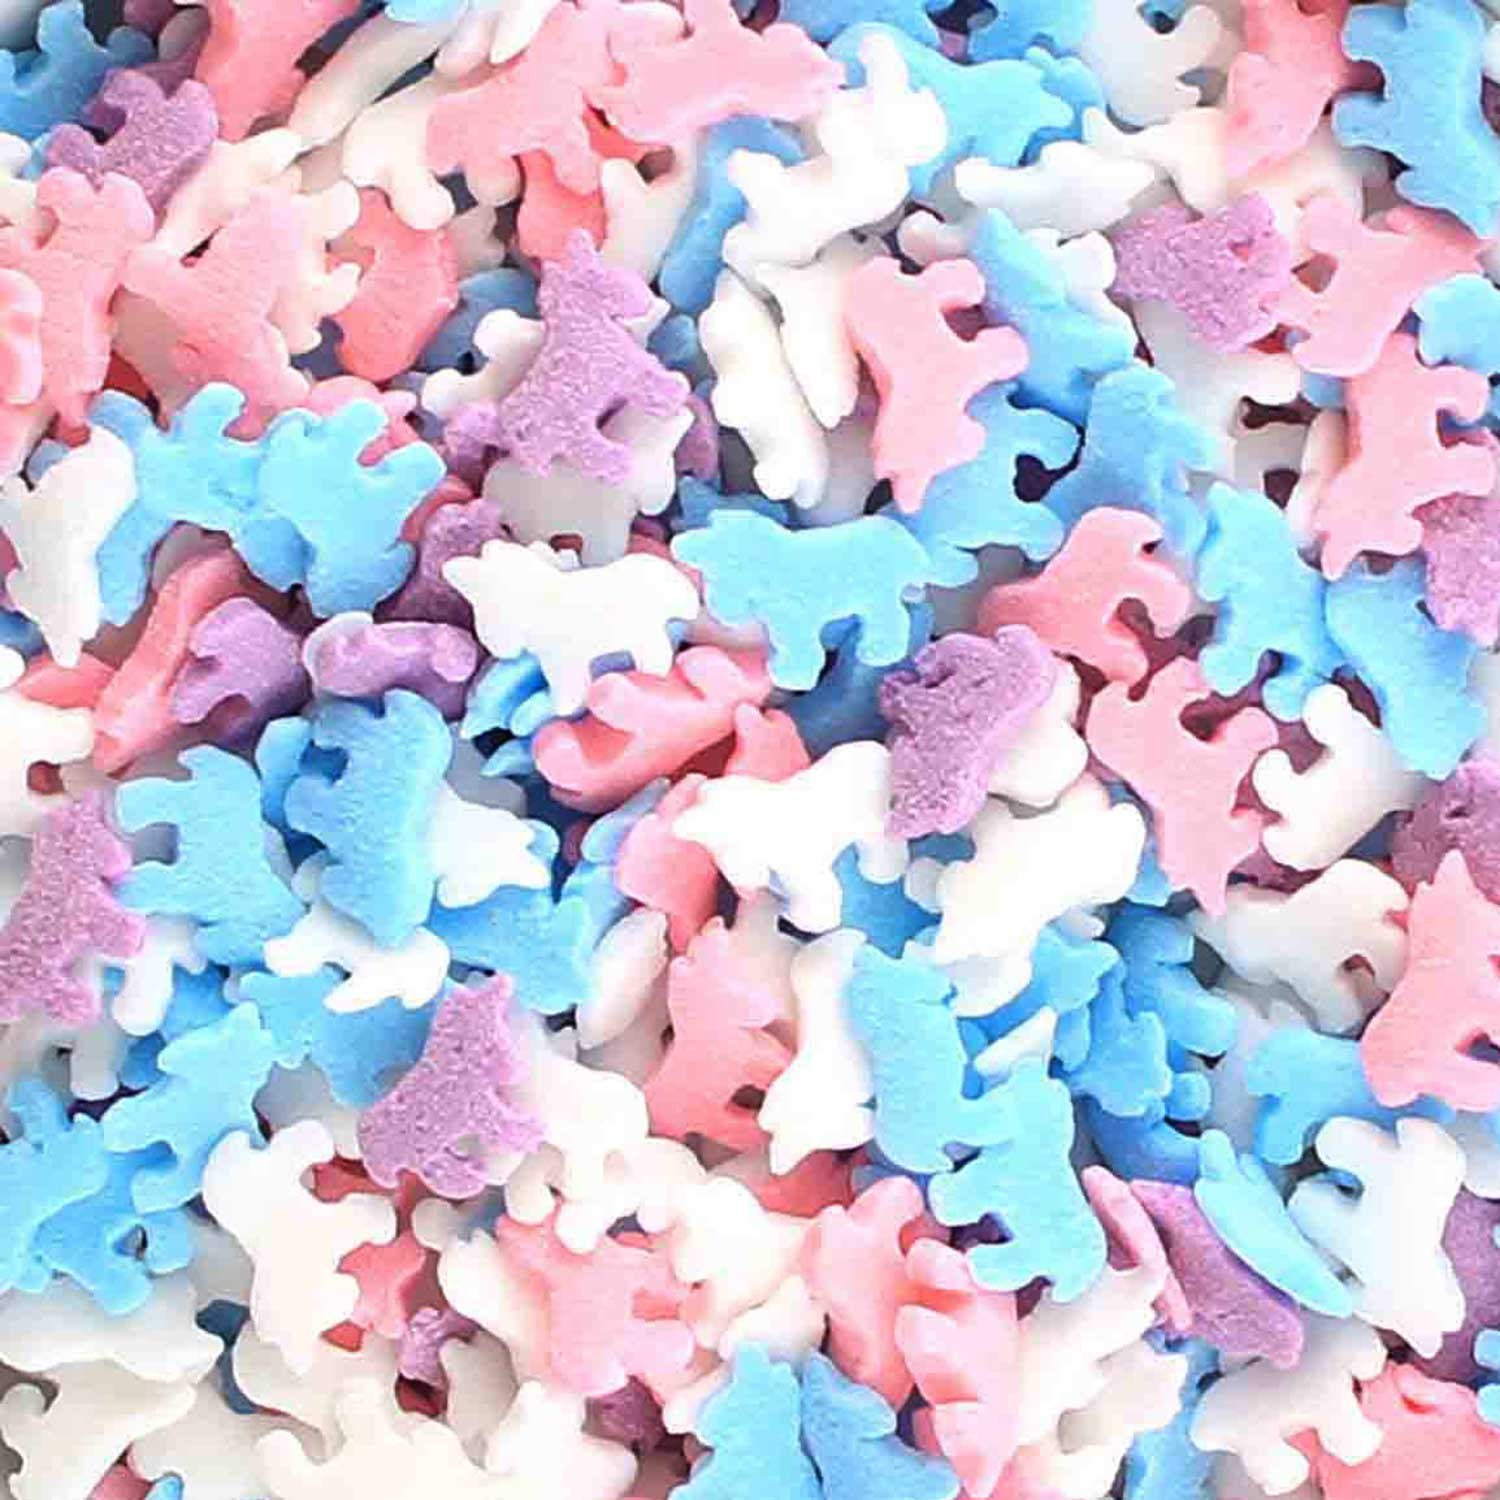 Sprinkles and Confetti